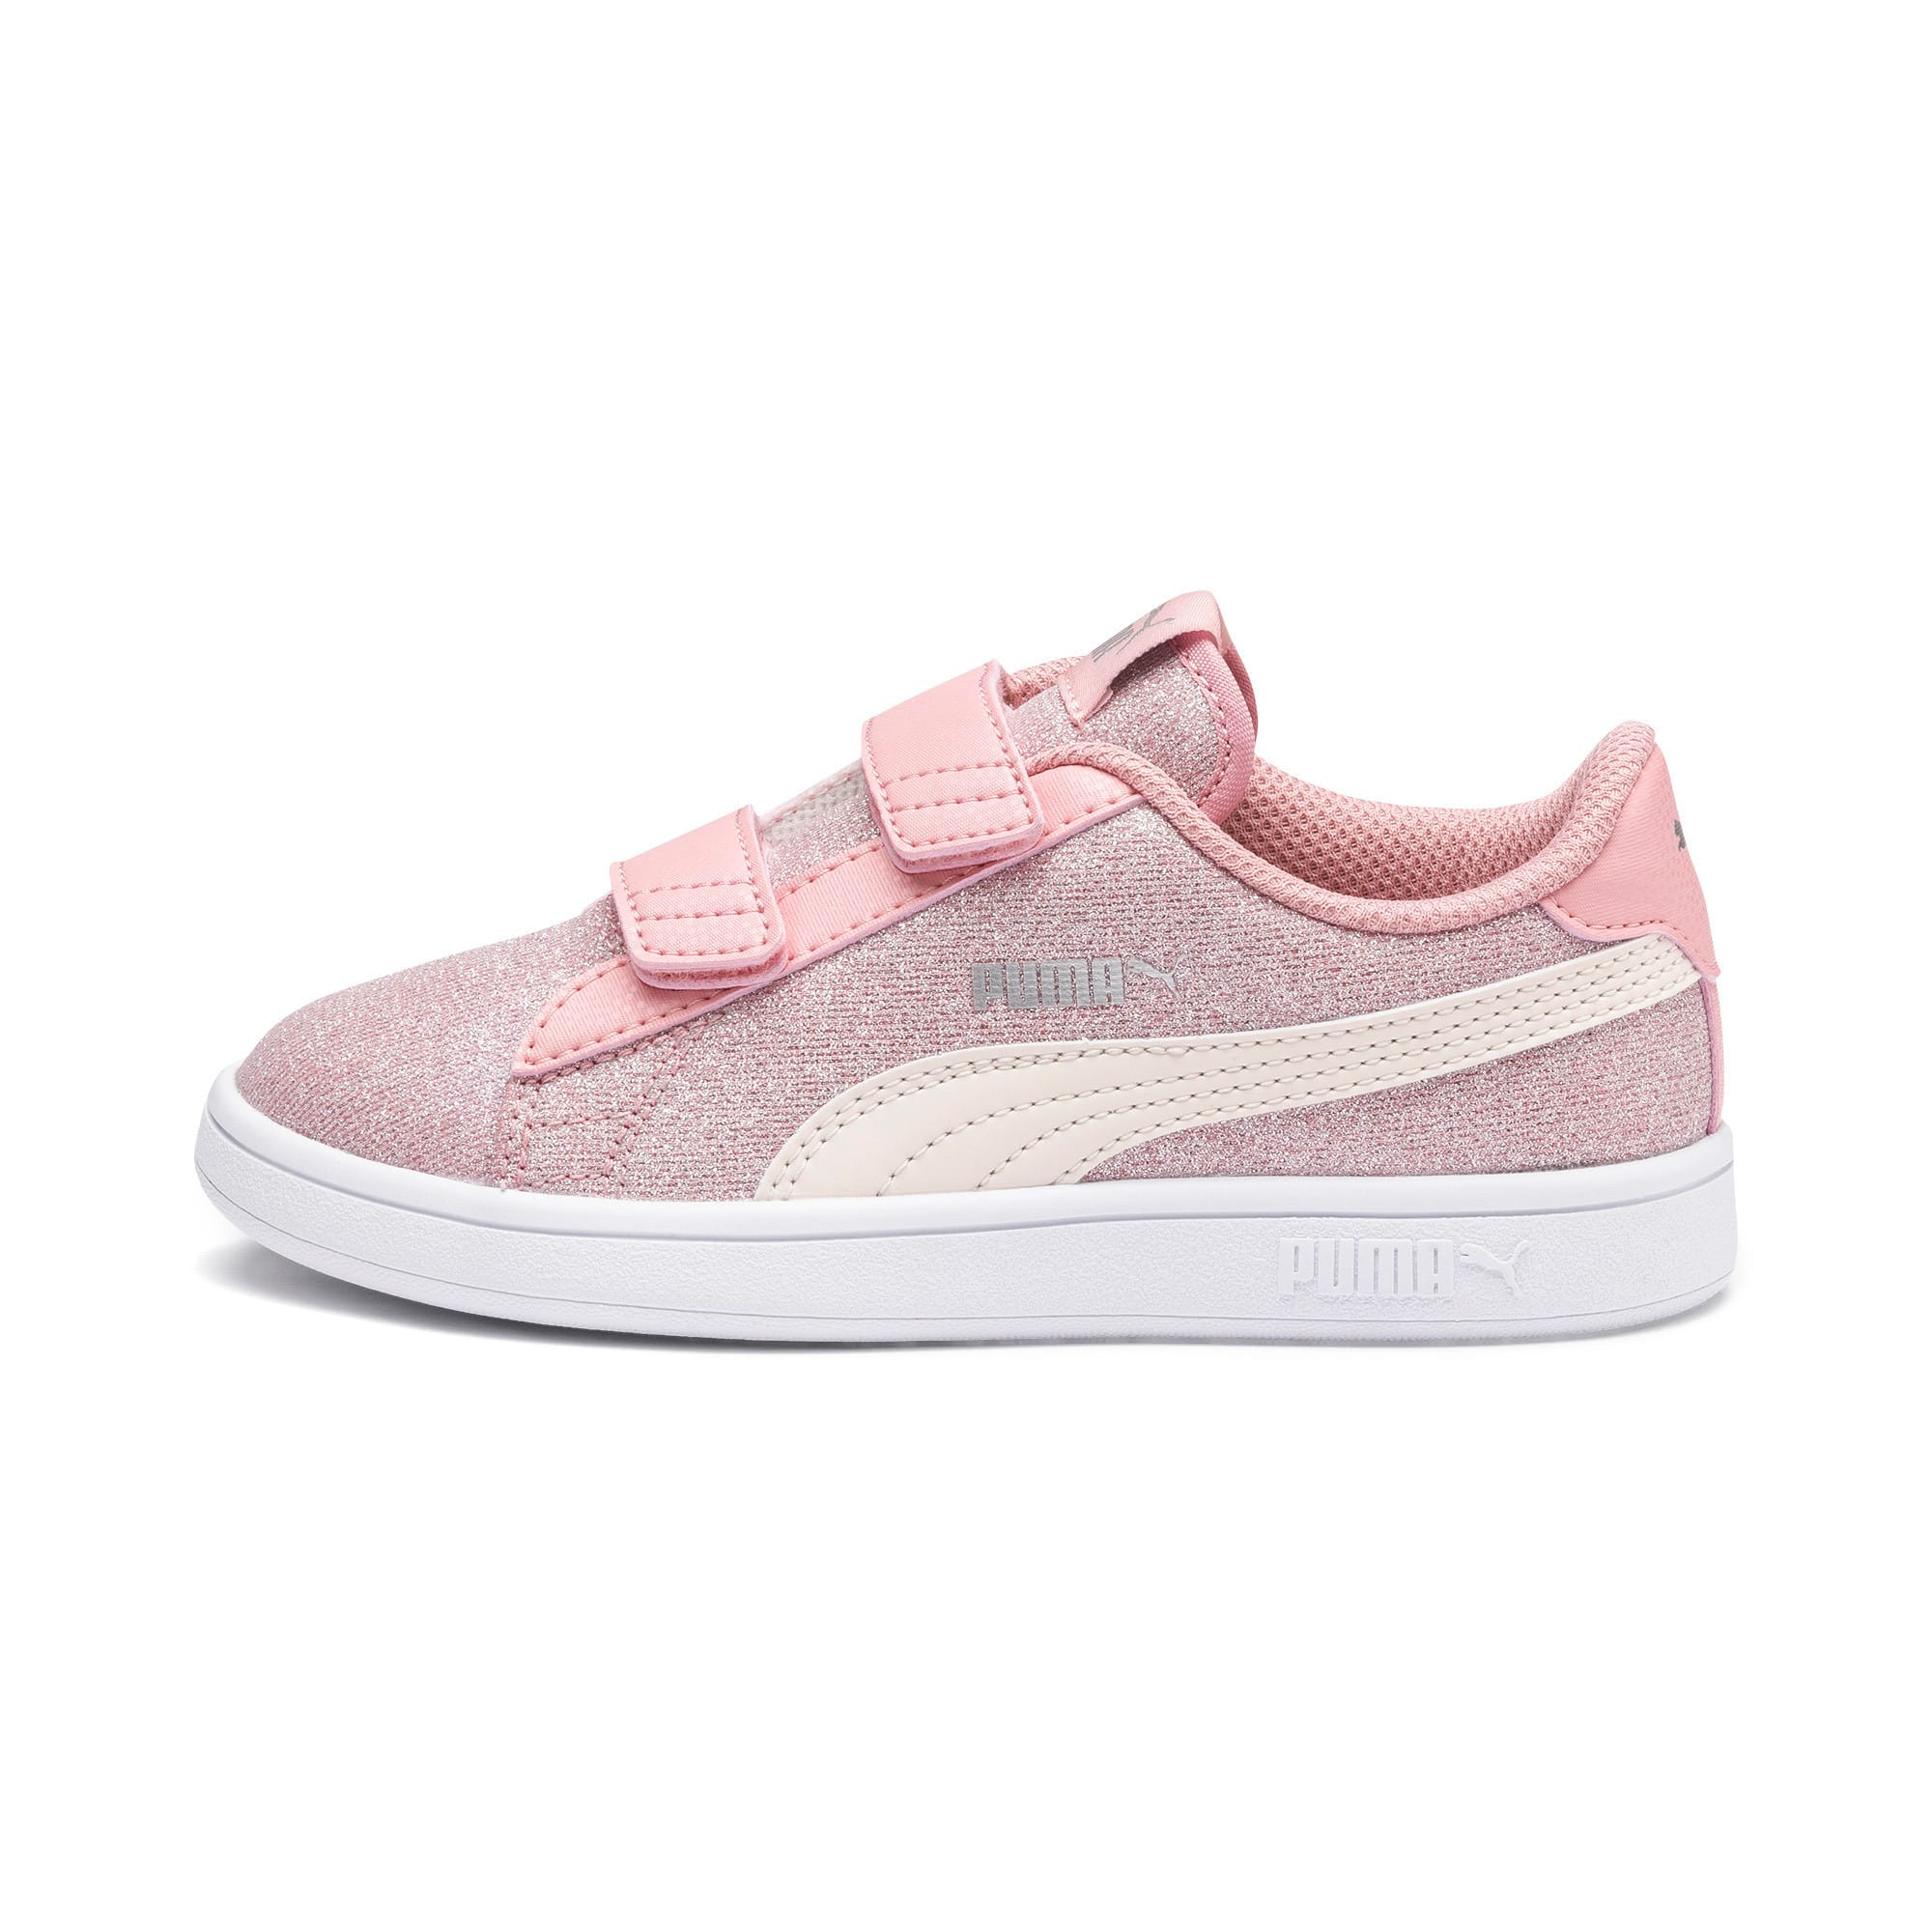 Thumbnail 1 of PUMA Smash v2 Glitz Glam Kid Girls' Trainers, B Rose-P Parchment-Silv-Wht, medium